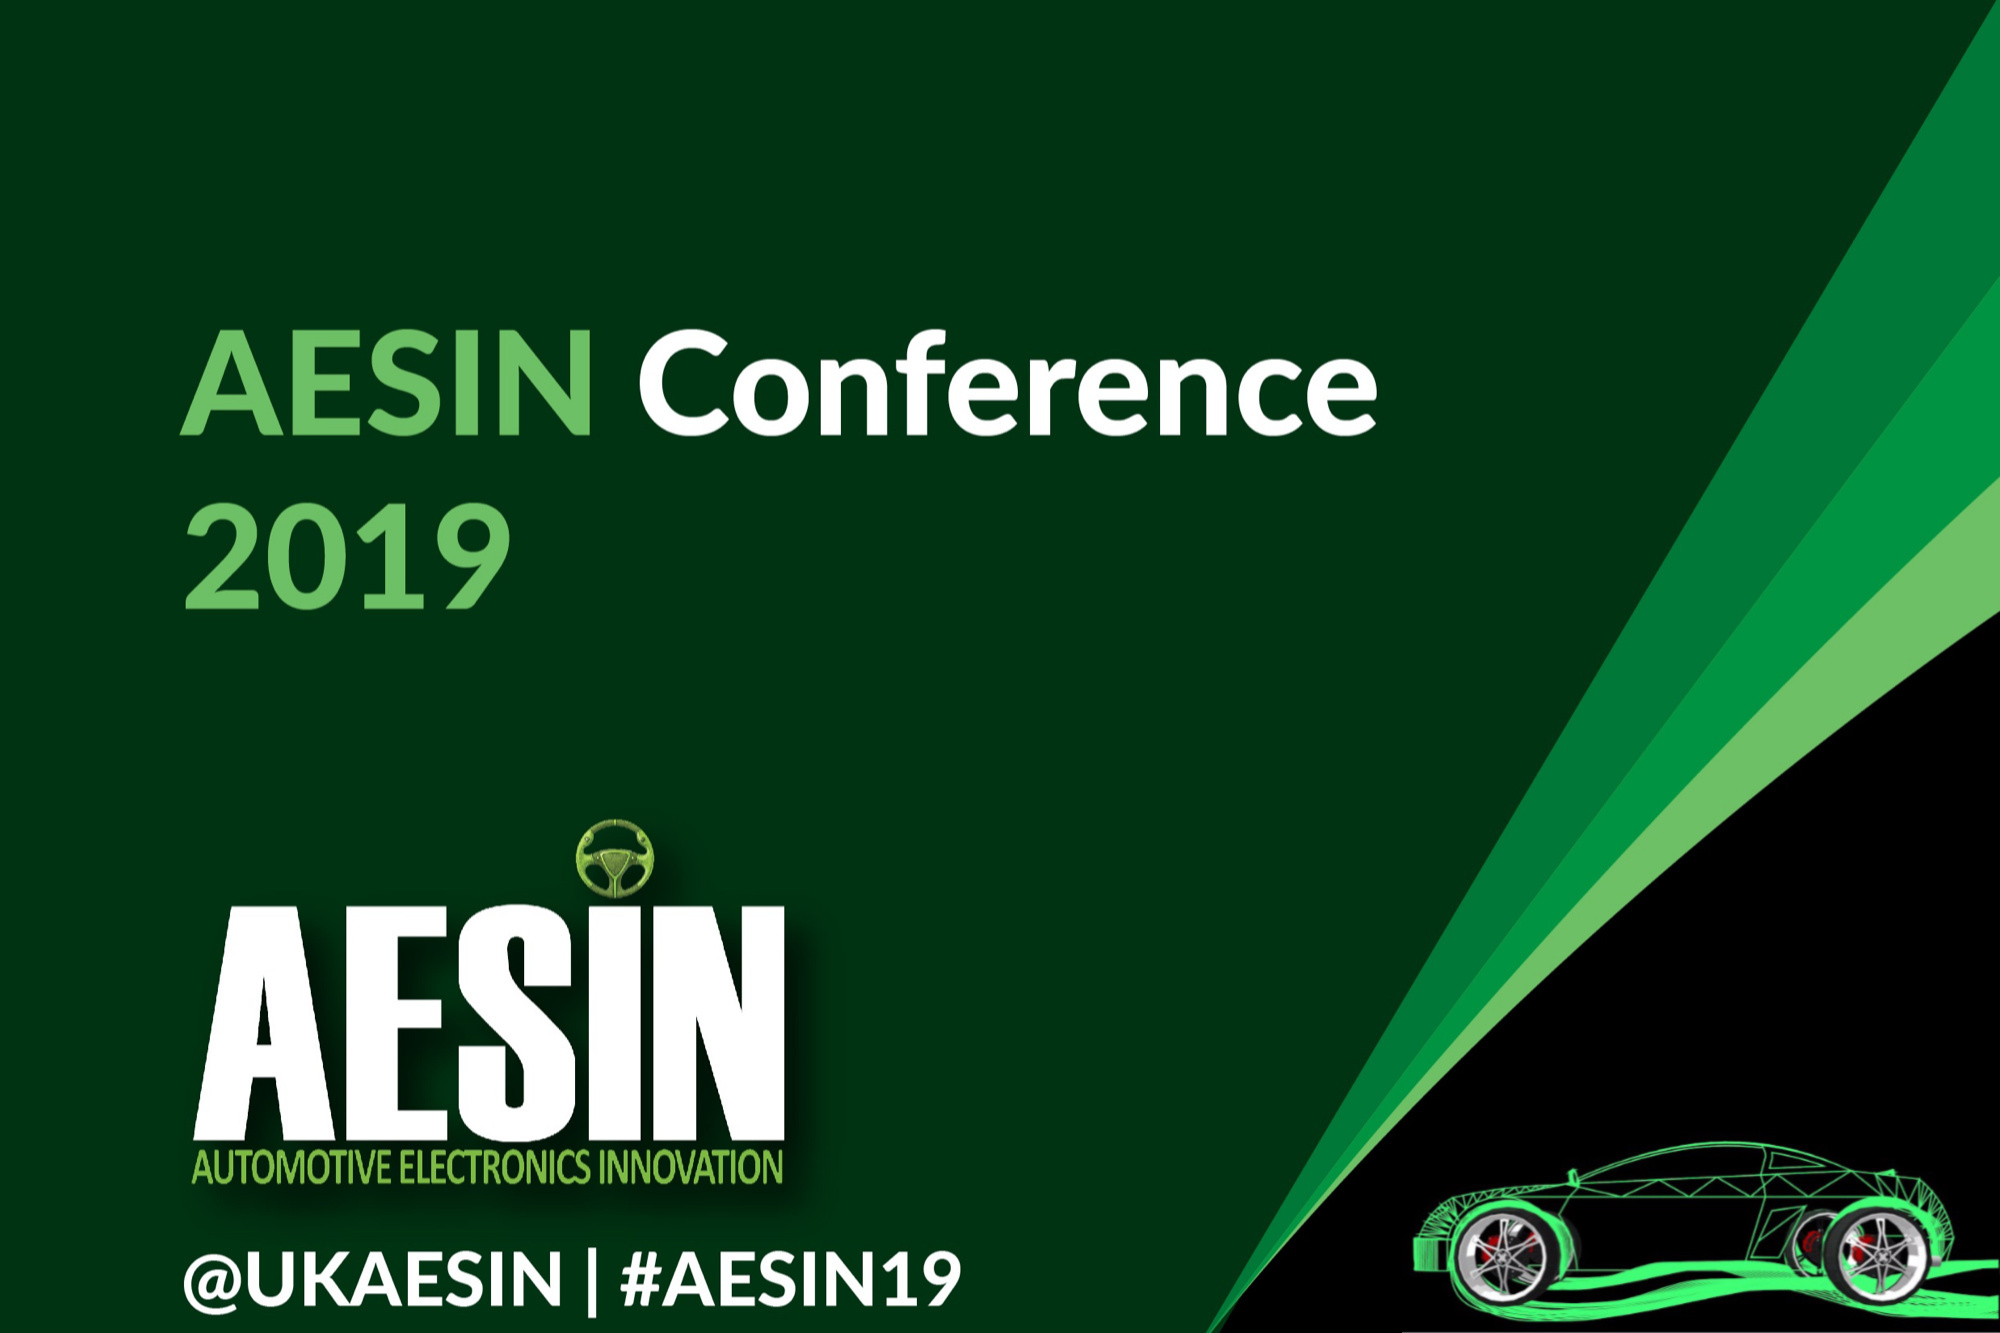 Jaltek helps drive innovation in Vehicle Electronics at AESIN 2019